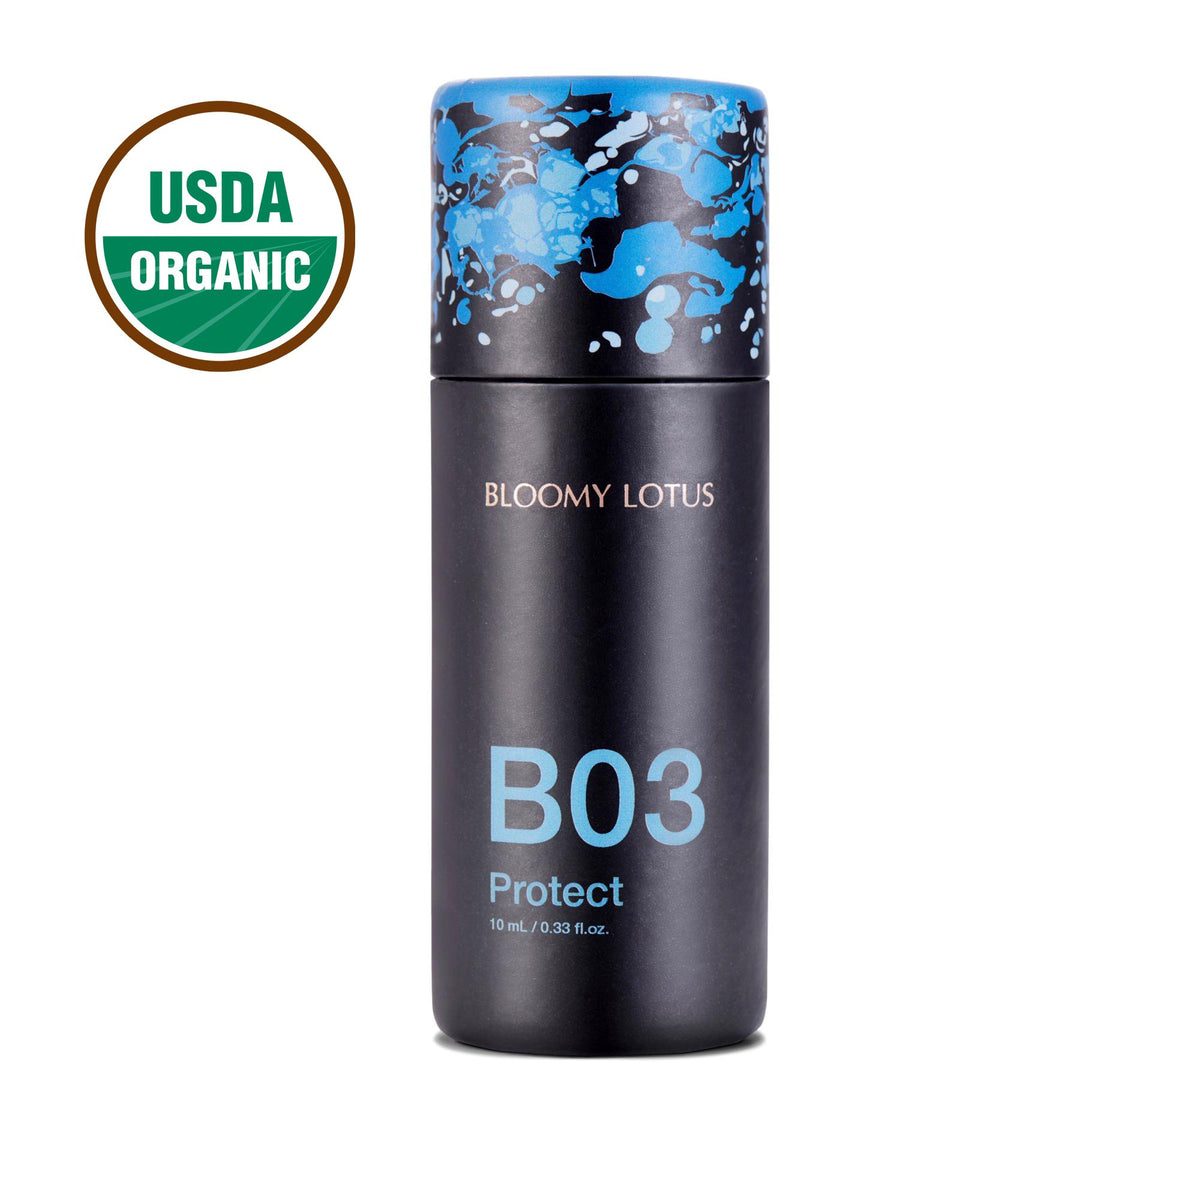 B03 Protect Essential Oil, 10 ml